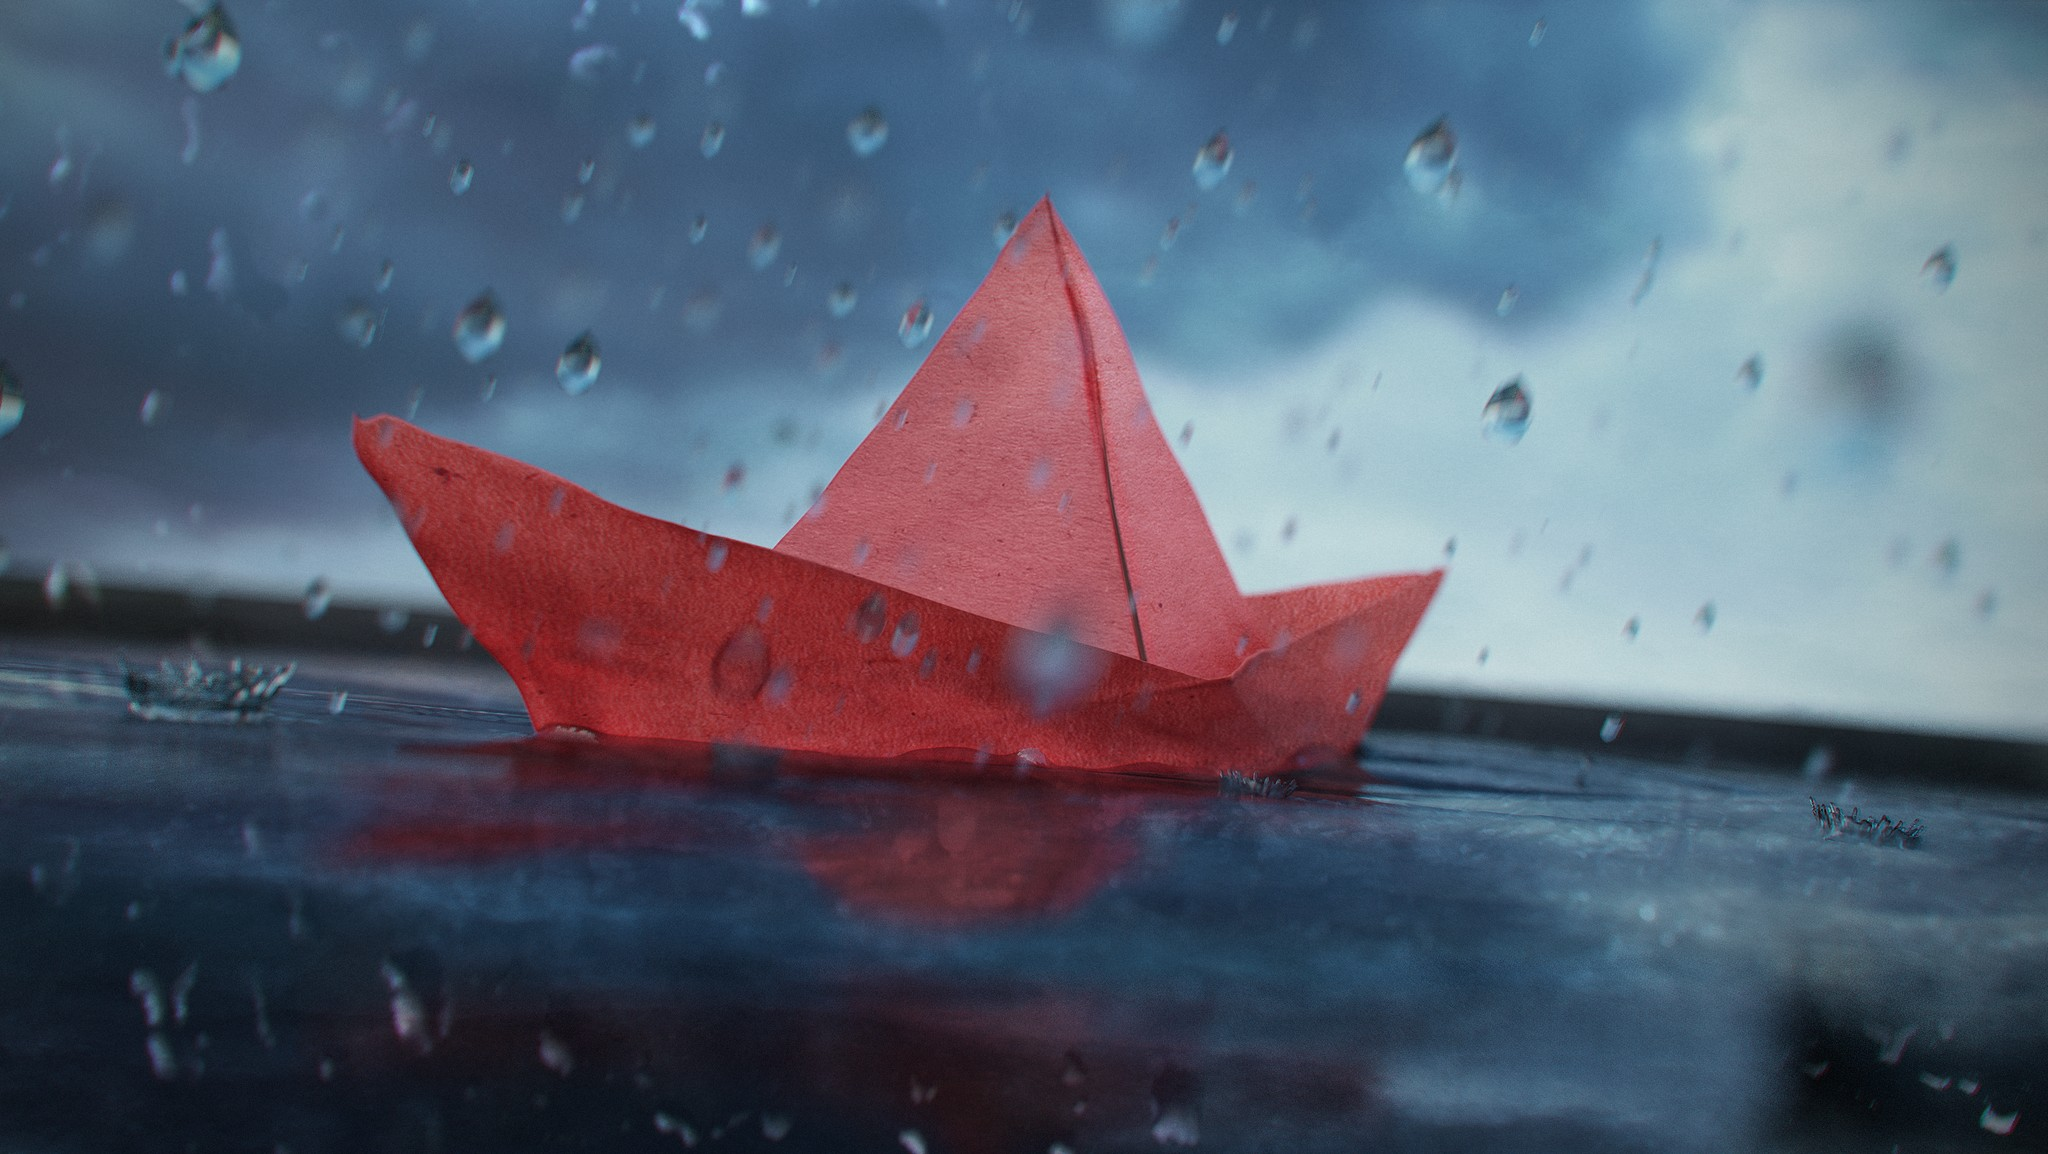 Red Paper Boat by [Giuseppe Lucido](https://zaldor.artstation.com/)